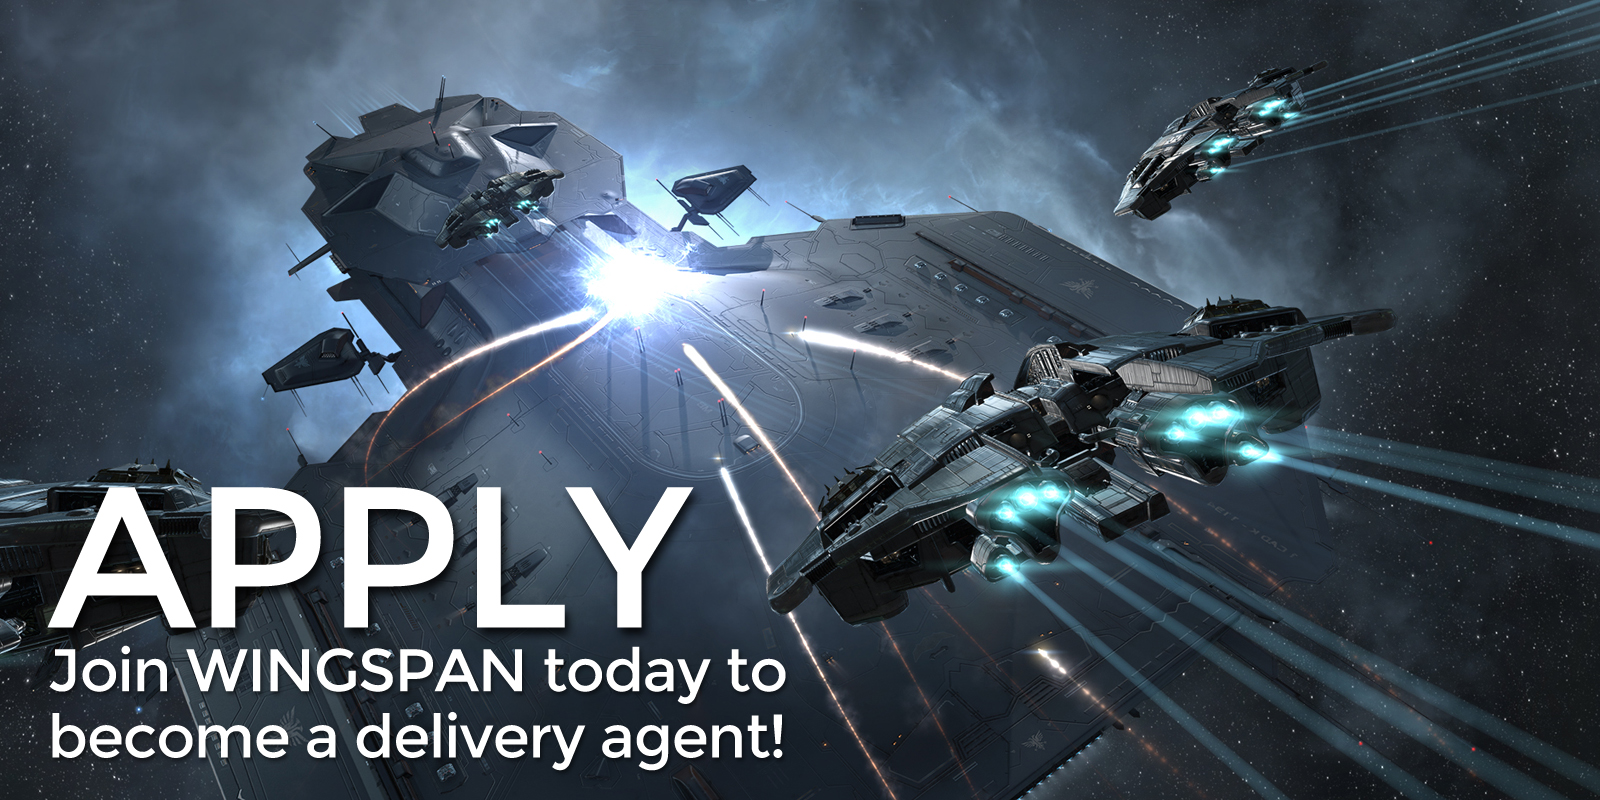 Join WINGSPAN — WINGSPAN Delivery Services - EVE Online